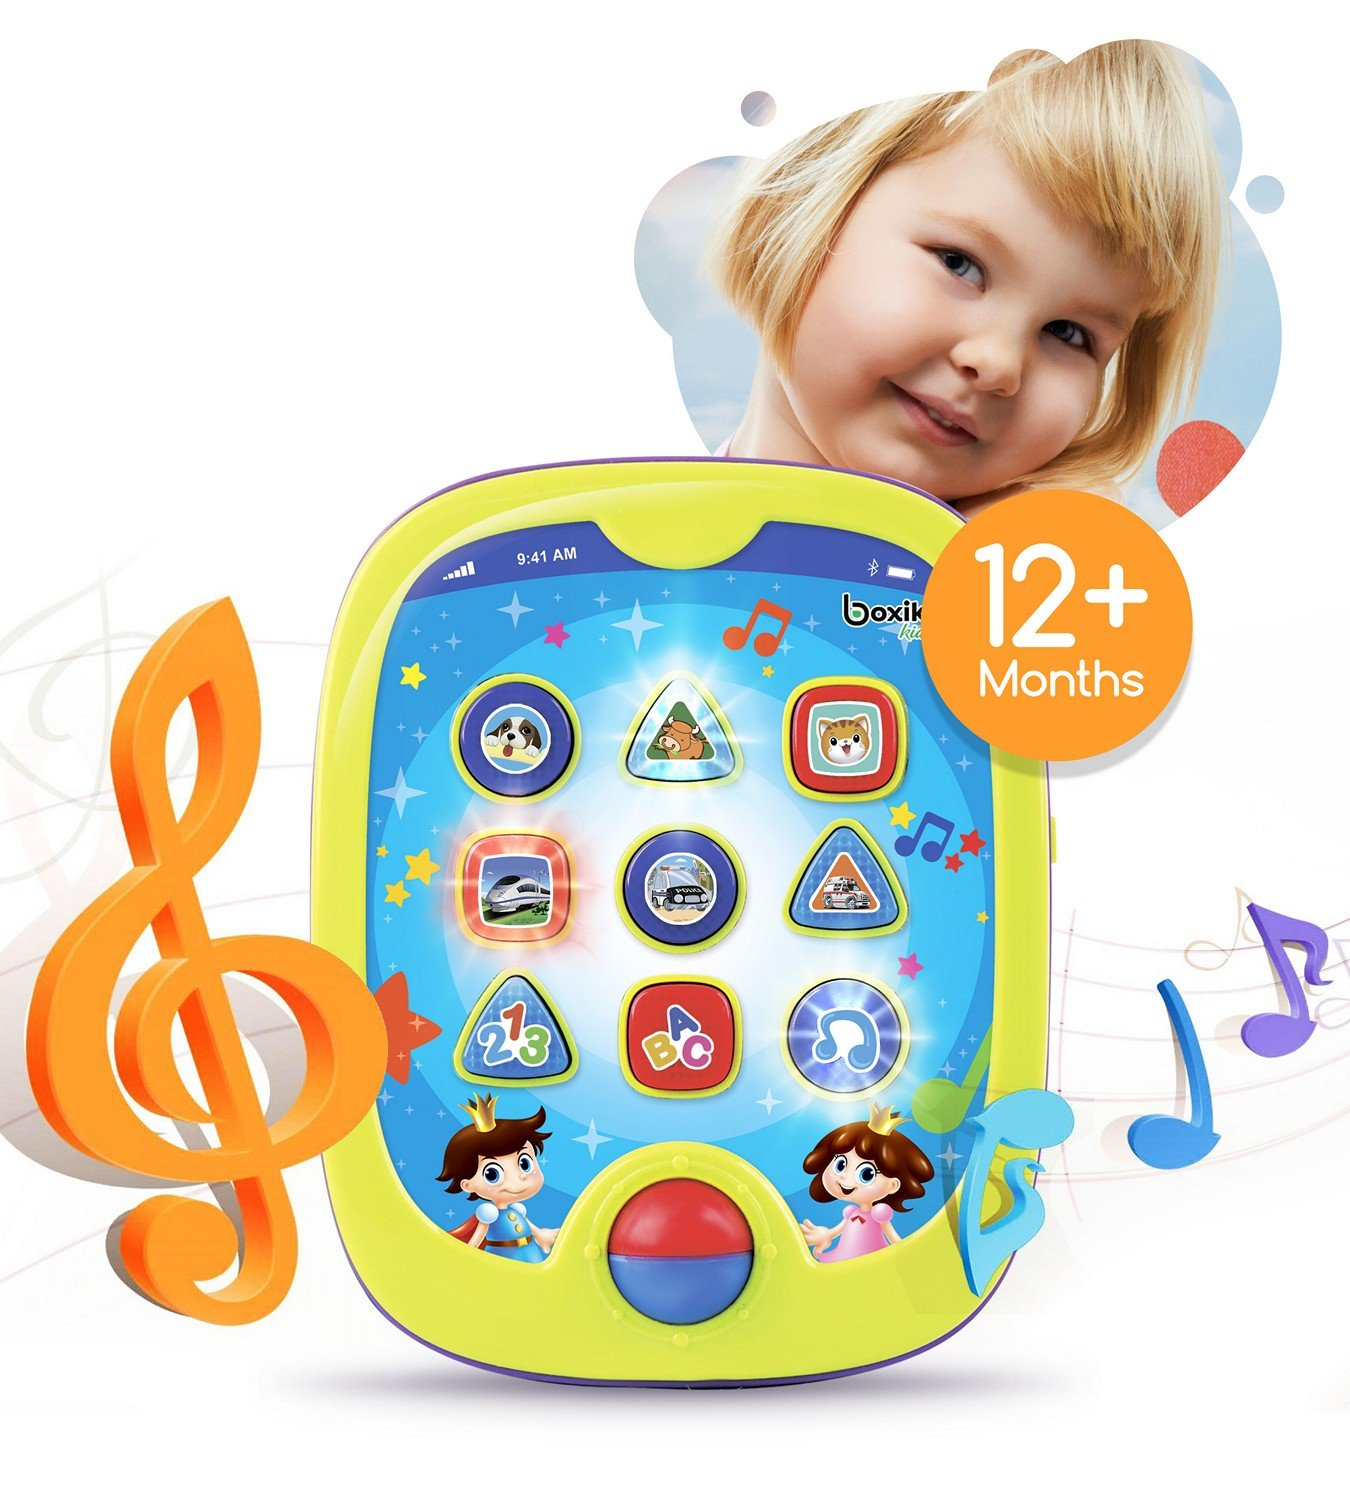 """Smart Pad for Babies and Children Learning by Boxiki Kids. Educational Toy for Infants with Kids' Learning Games. Learn Numbers, ABC Learning, """"Can You Find?"""" Game, Music, Light Up Whack-a-Mole Game Can You Find? Game"""